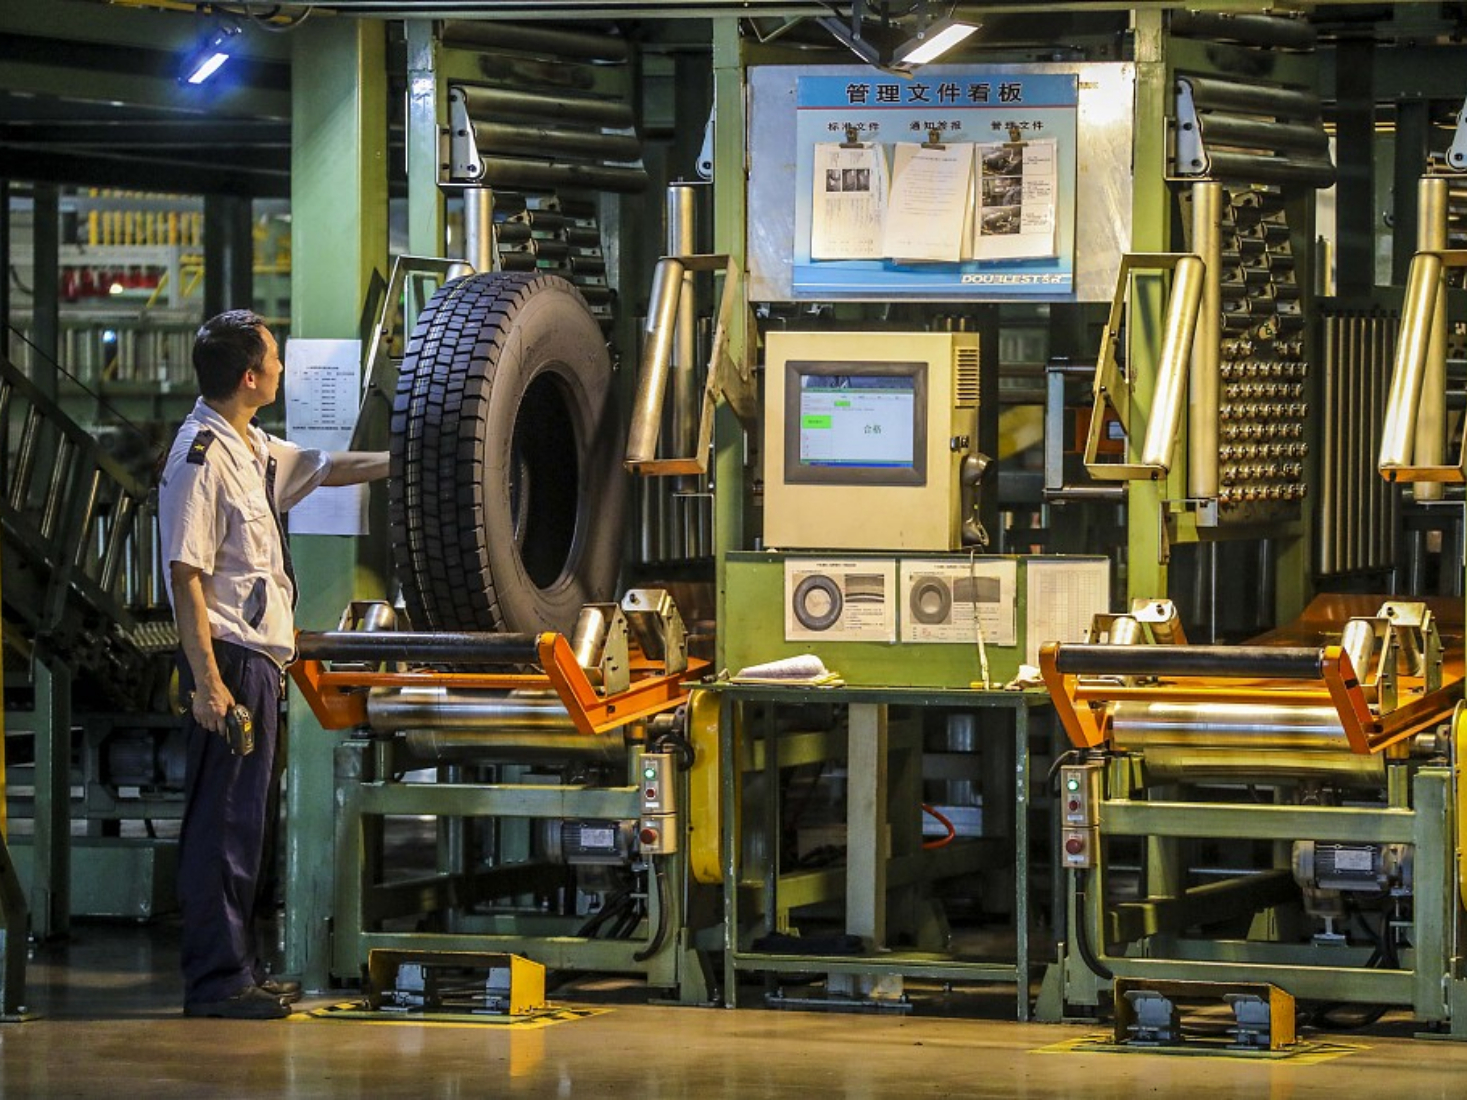 Despite manufacturing slowdown, China's economy remains stable in July